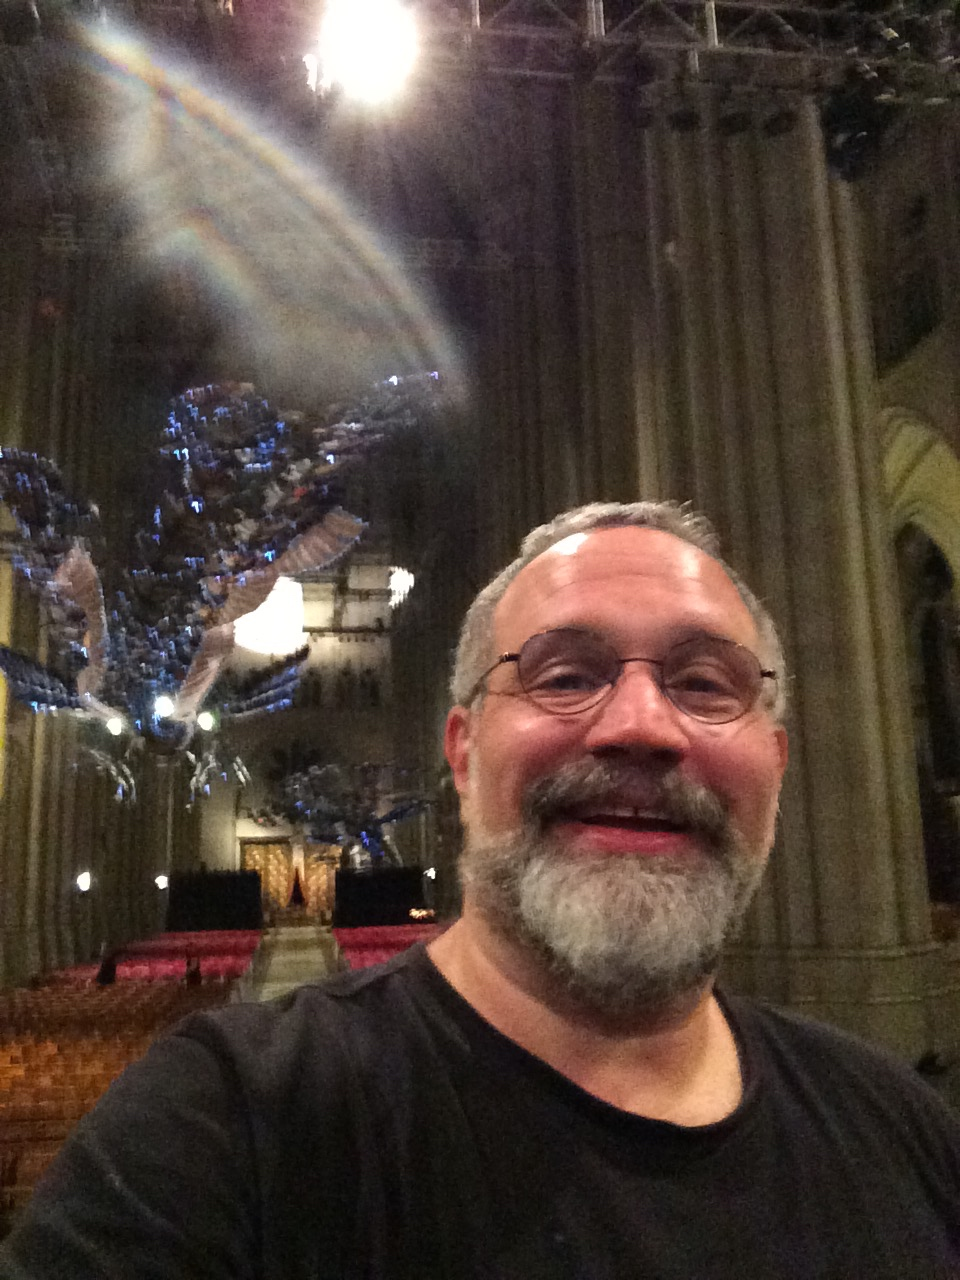 Thrilled to be at St. John the Divine in NYC for the 35th annual Winter Solstice Celebration with the Paul Winter Consort and Danny Rivera.